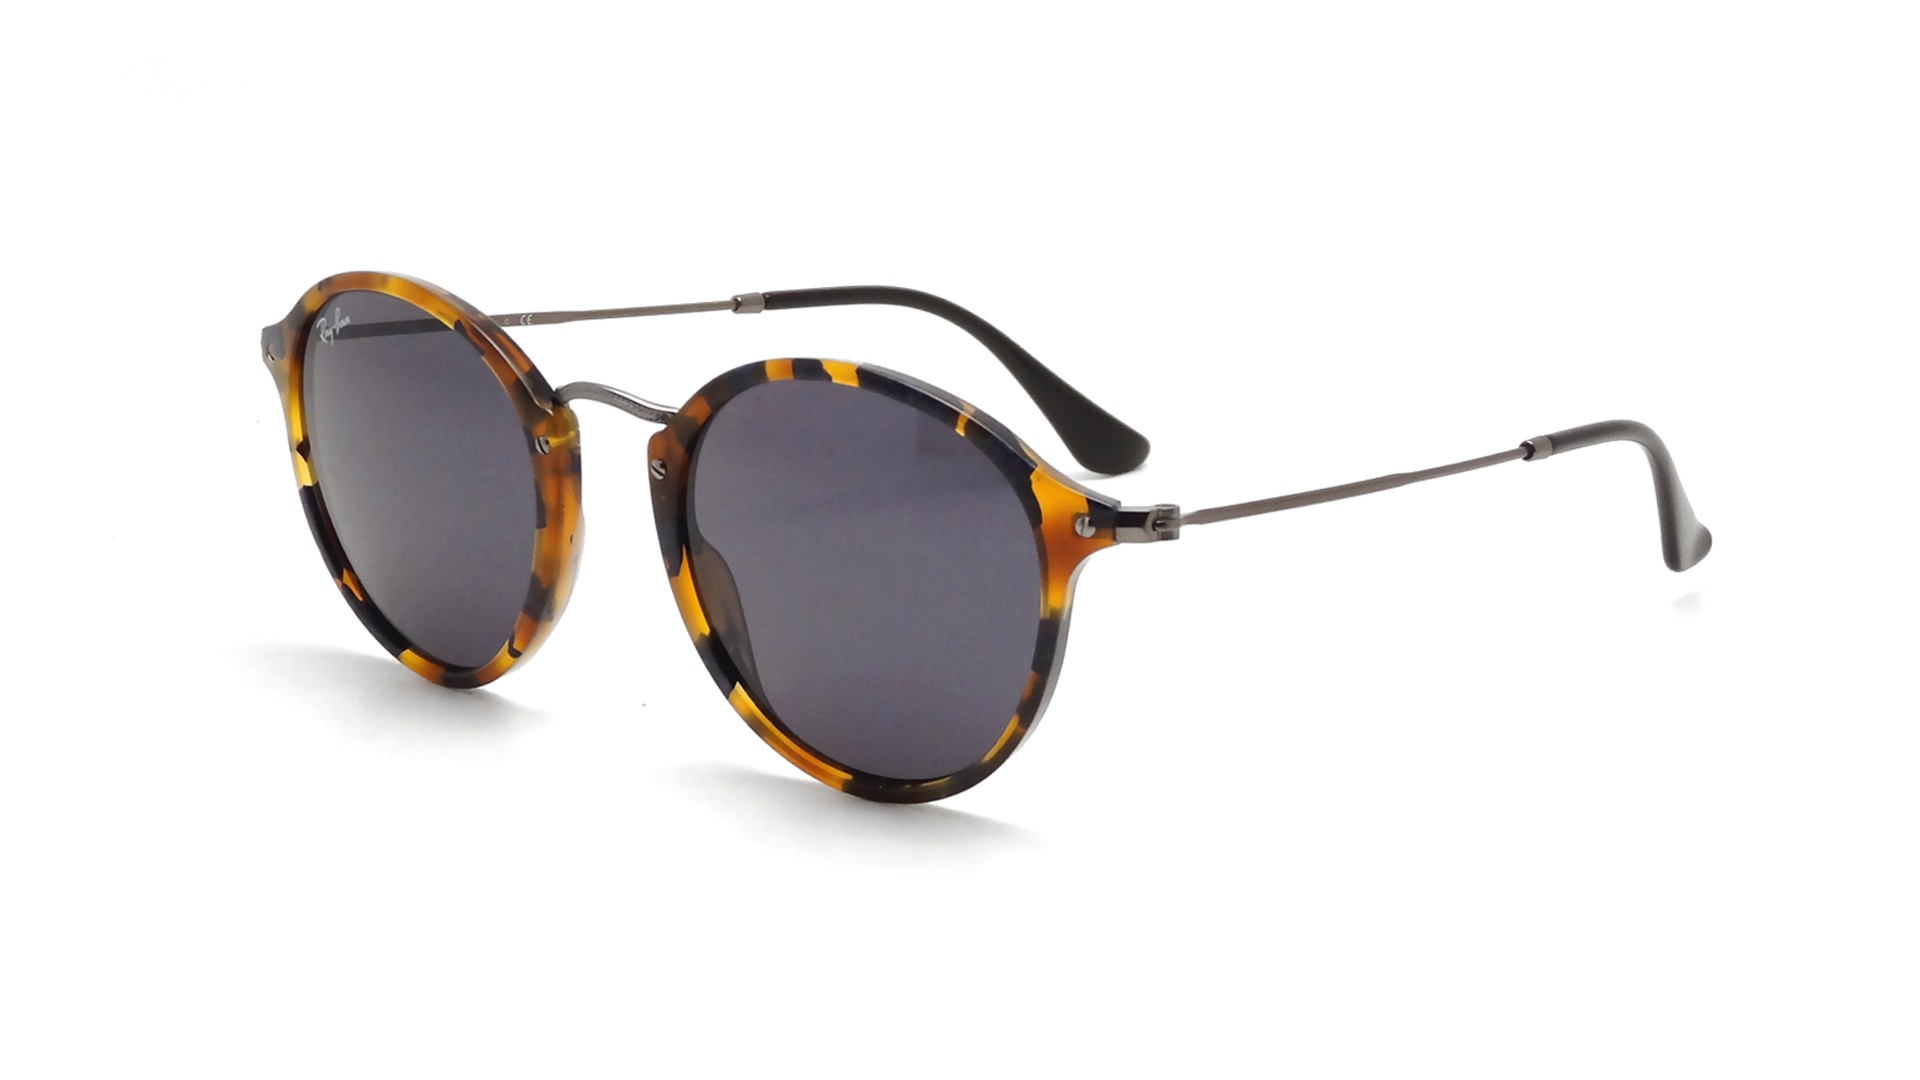 Lunettes Soleil Ray Ban Rondes